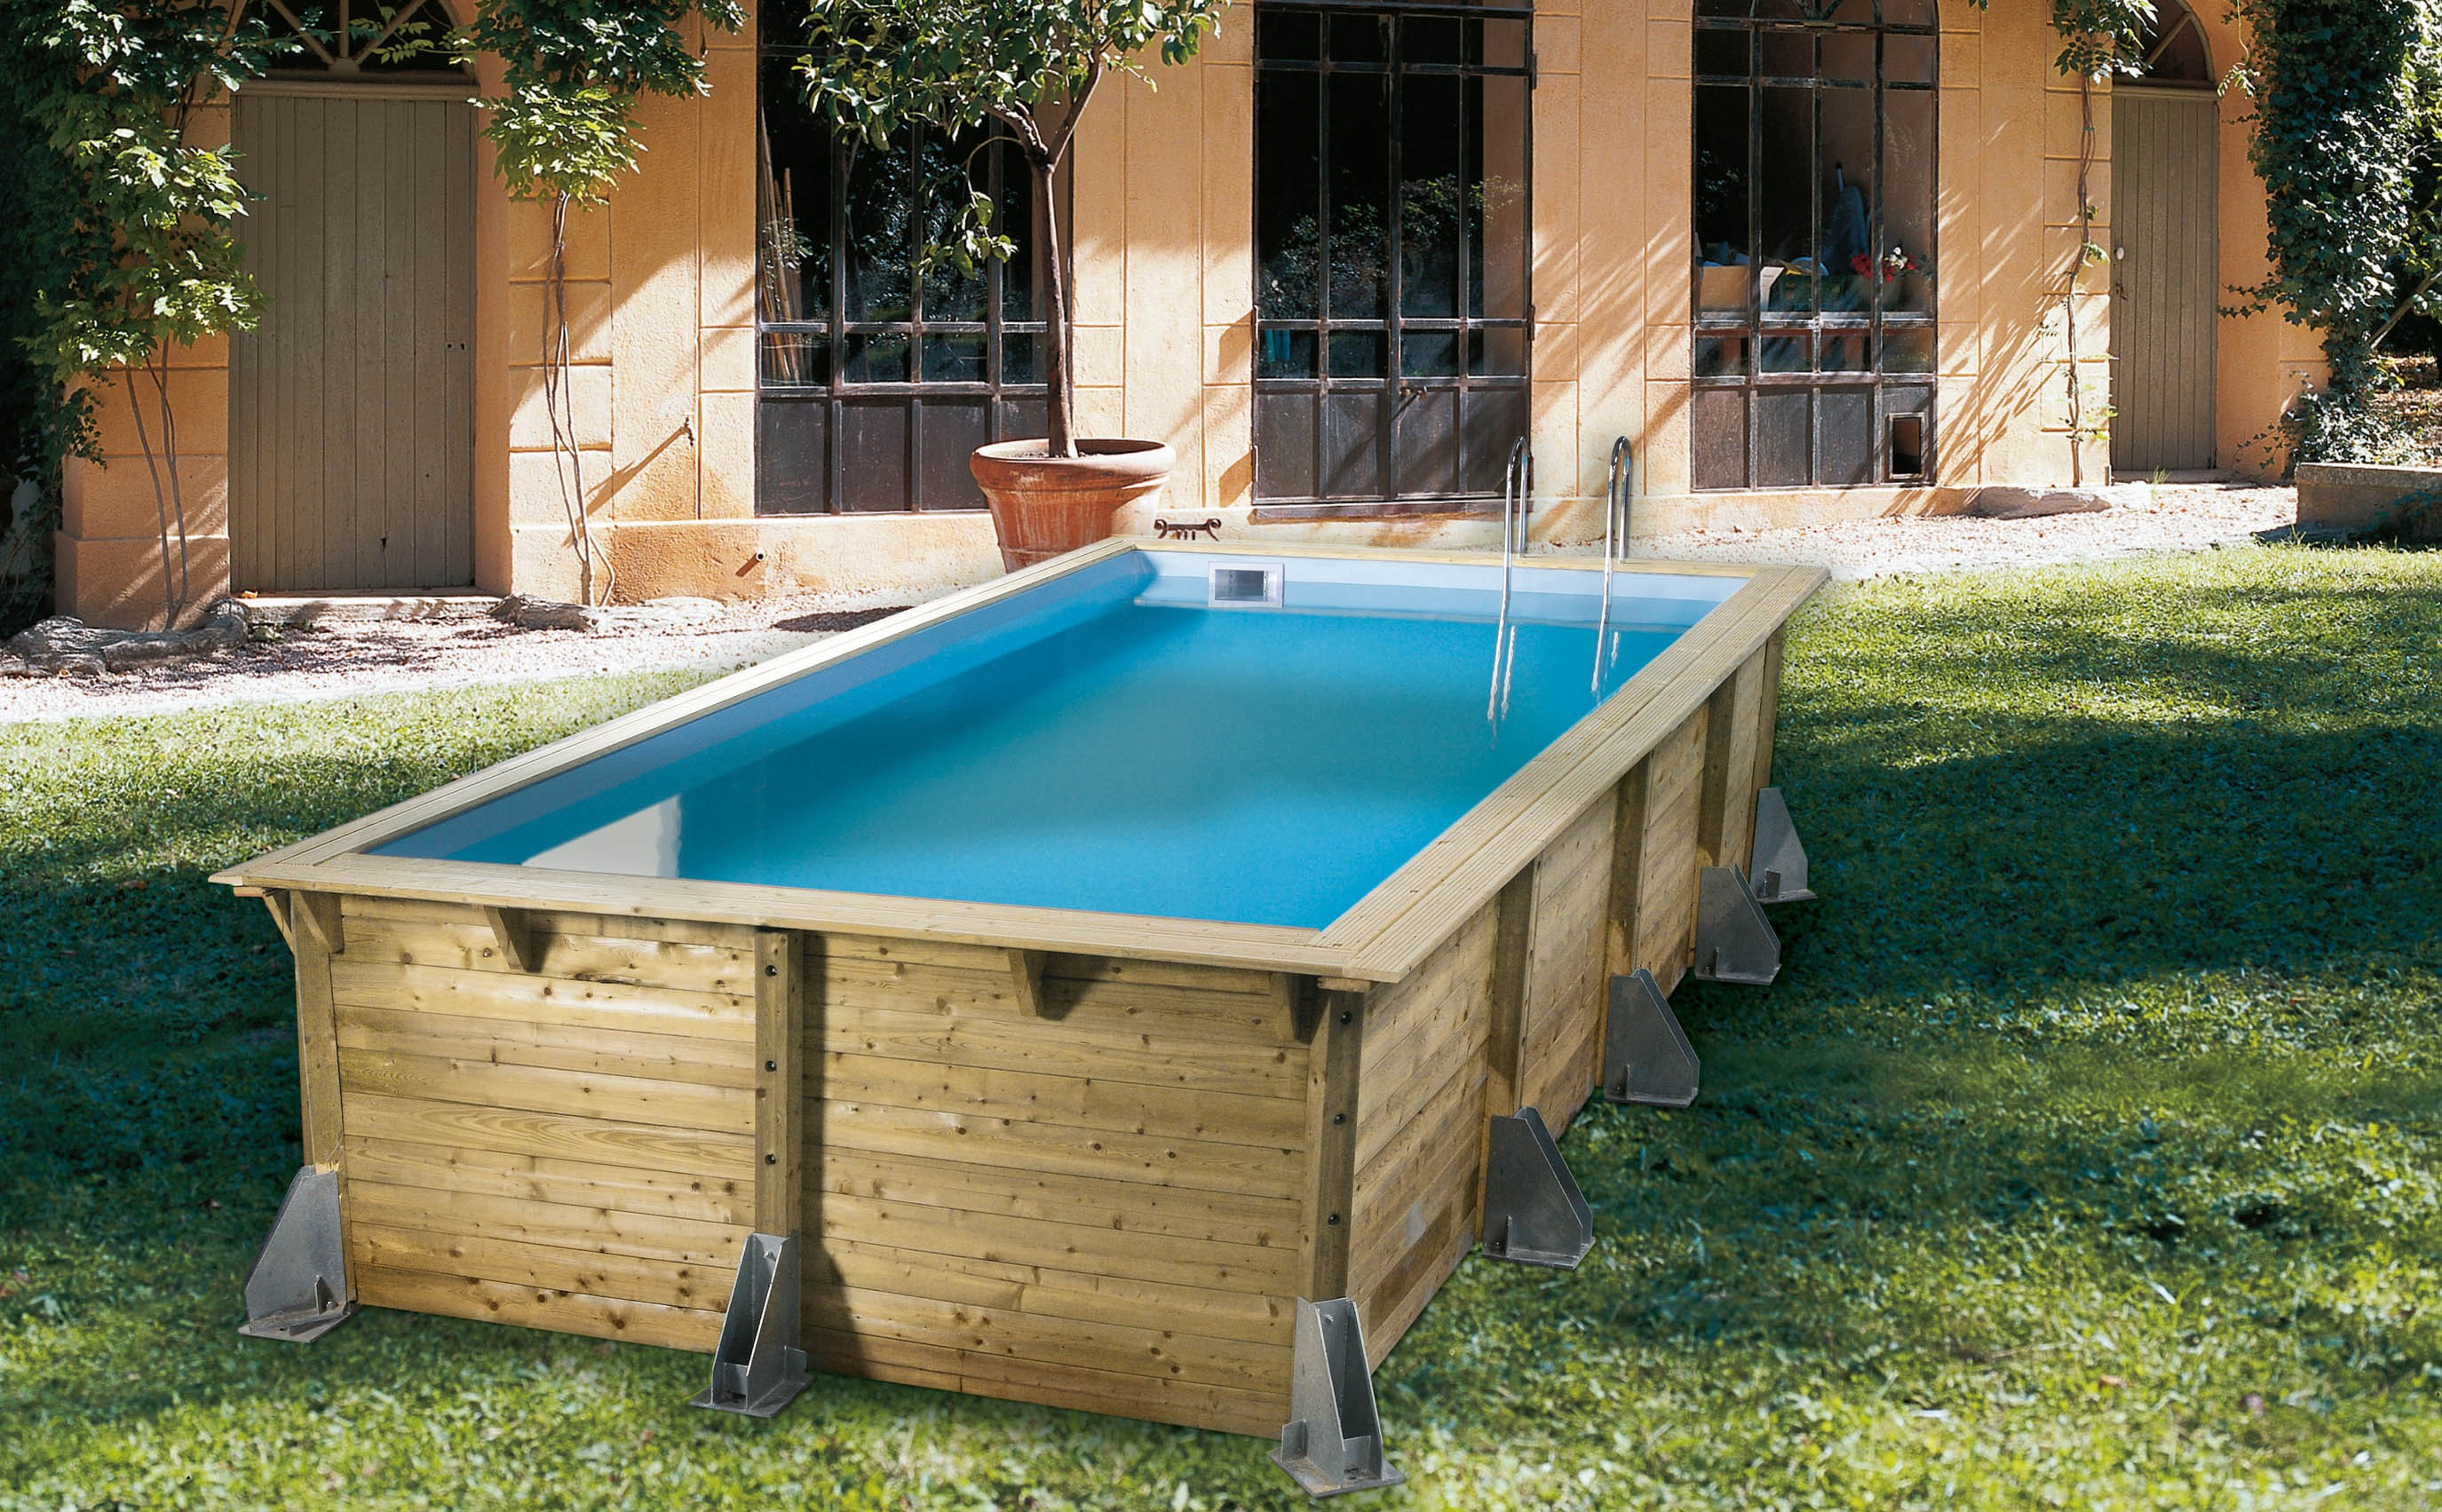 Azura rectangulaire ubbink northland piscine bois for Piscine rectangulaire